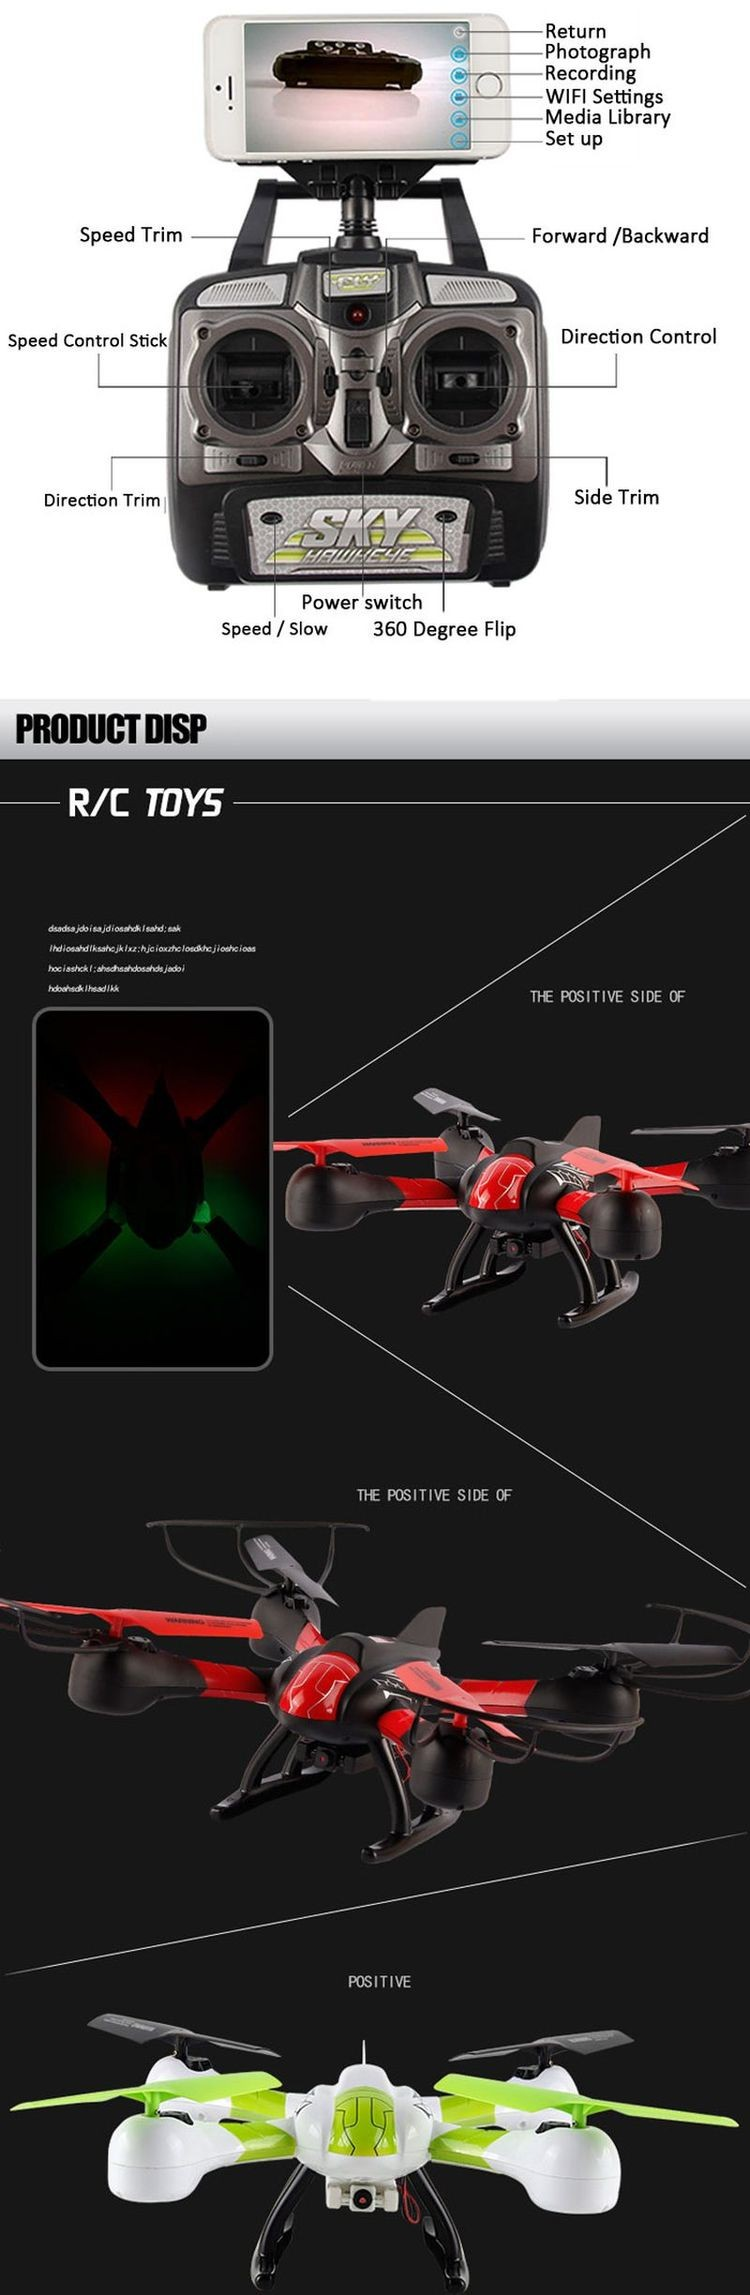 1491315W Transmission Headless Mode RC Quadcopter 2.4G 4 Channel Drone with HD Camera